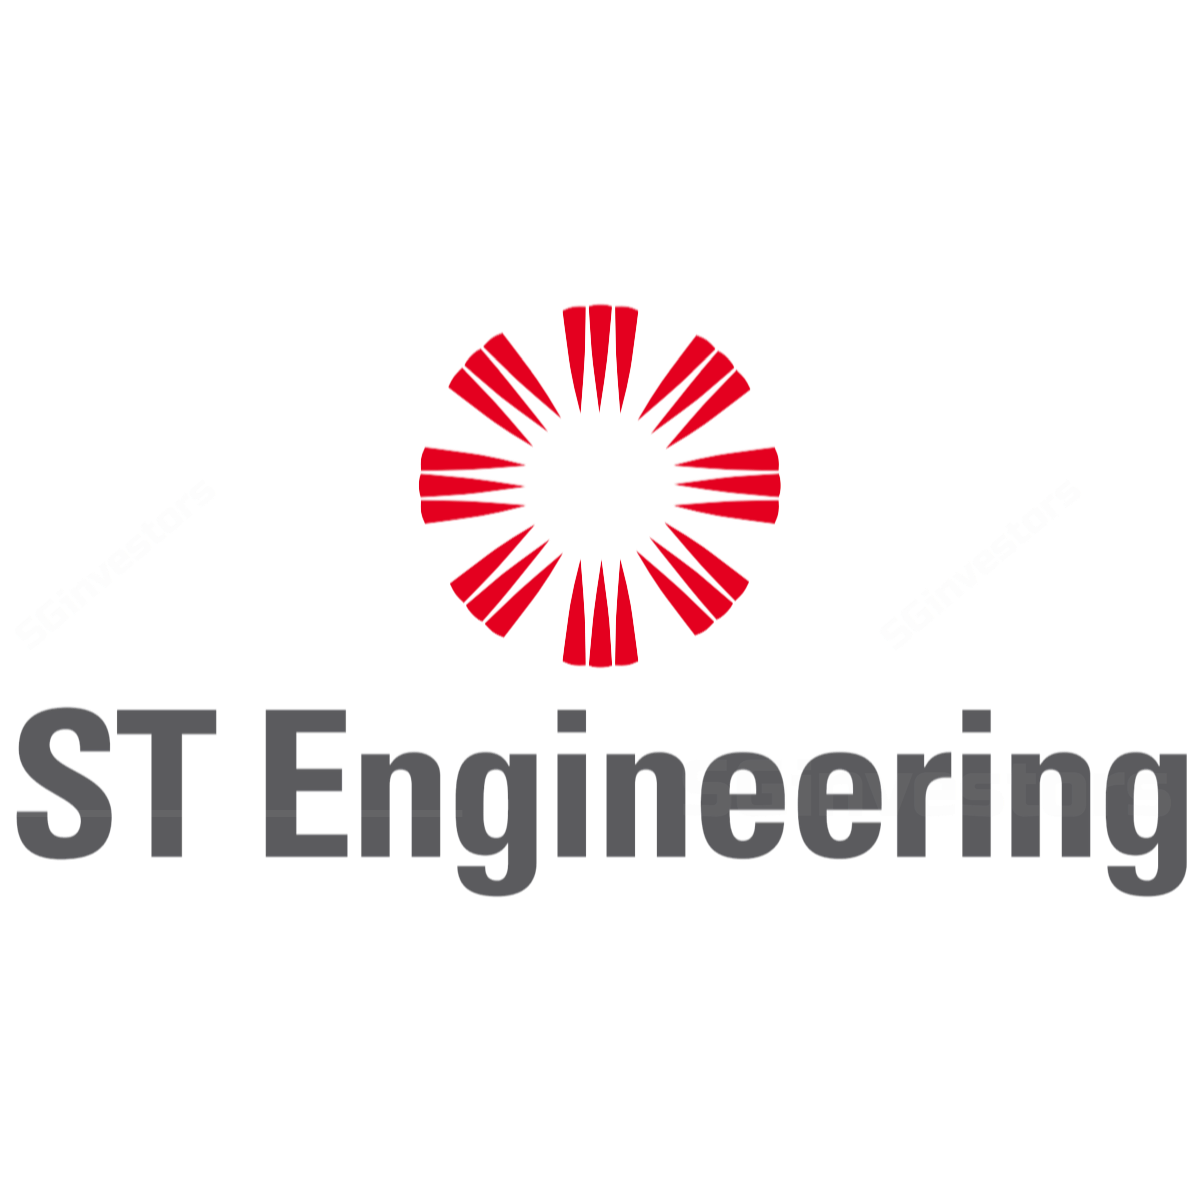 SINGAPORE TECH ENGINEERING LTD (SGX:S63) | SGinvestors.io